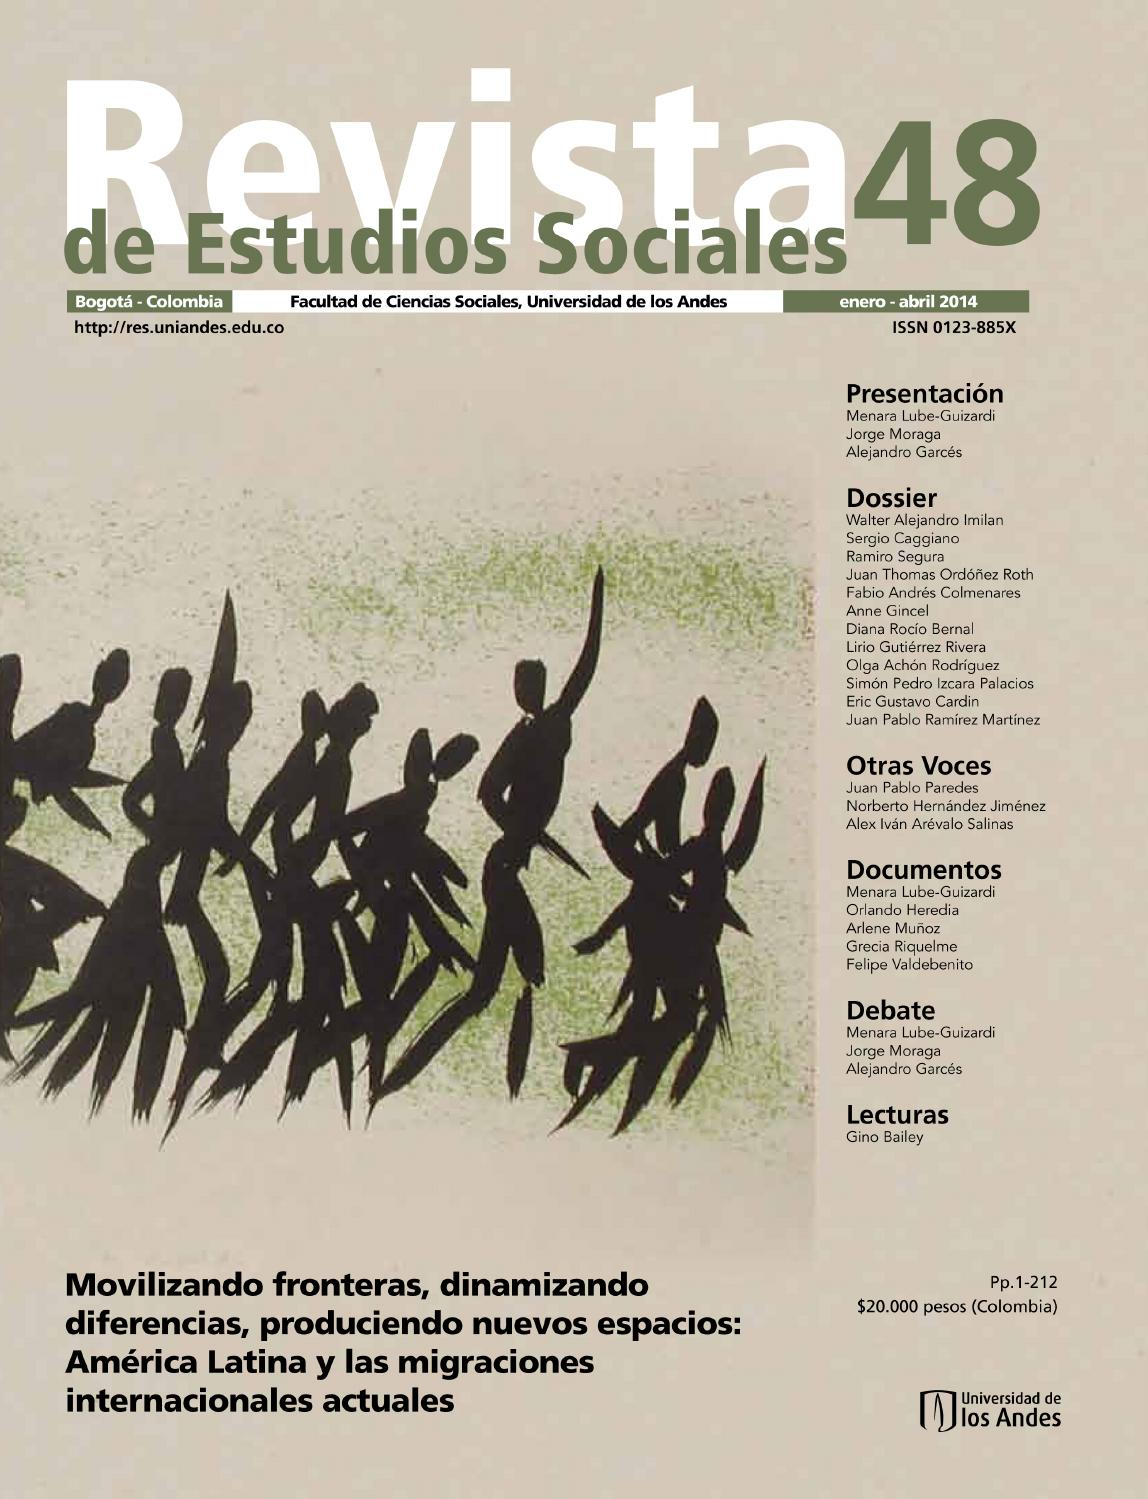 Revista estudios sociales no 48 by Universidad de los Andes - issuu ce8fcd723df75